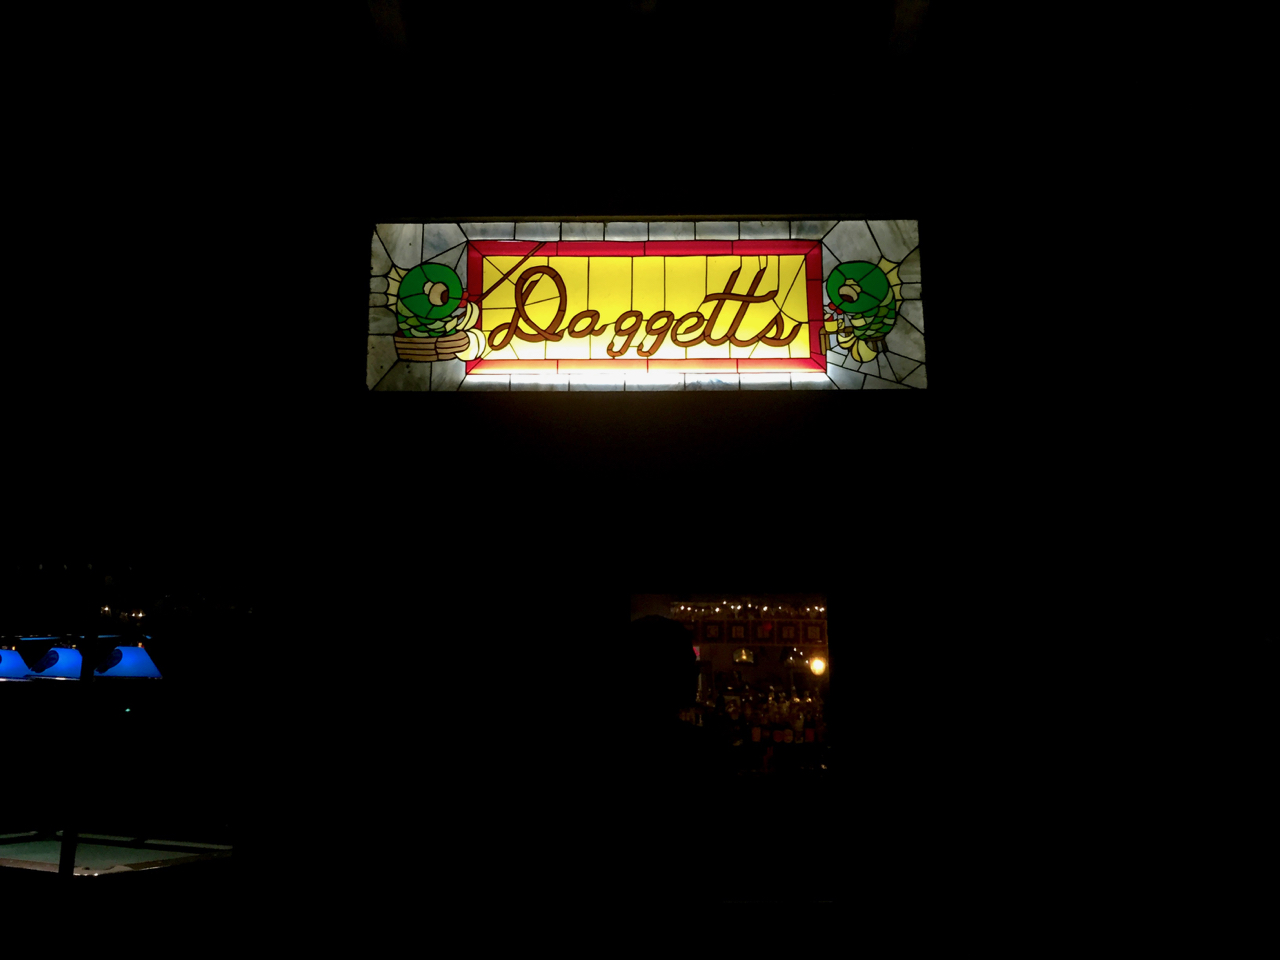 Daggett's Resort Lodge Sign